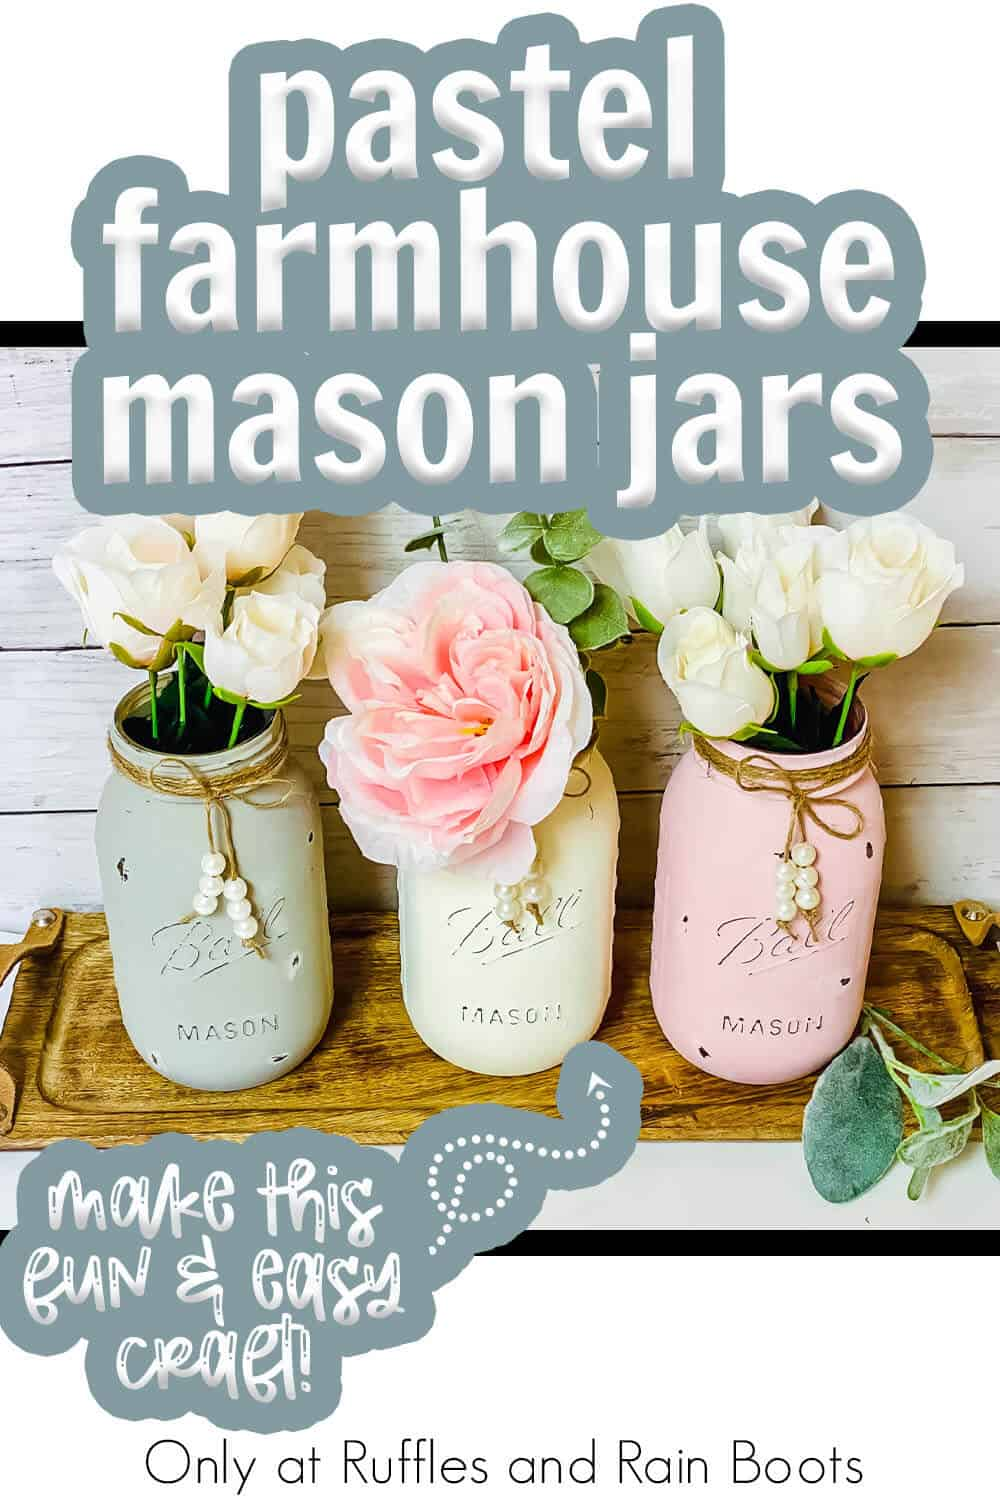 diy farmhouse jar painted in chalk paint with pastel colors with text which reads pastel farmhouse mason jars make this fun & easy craft!